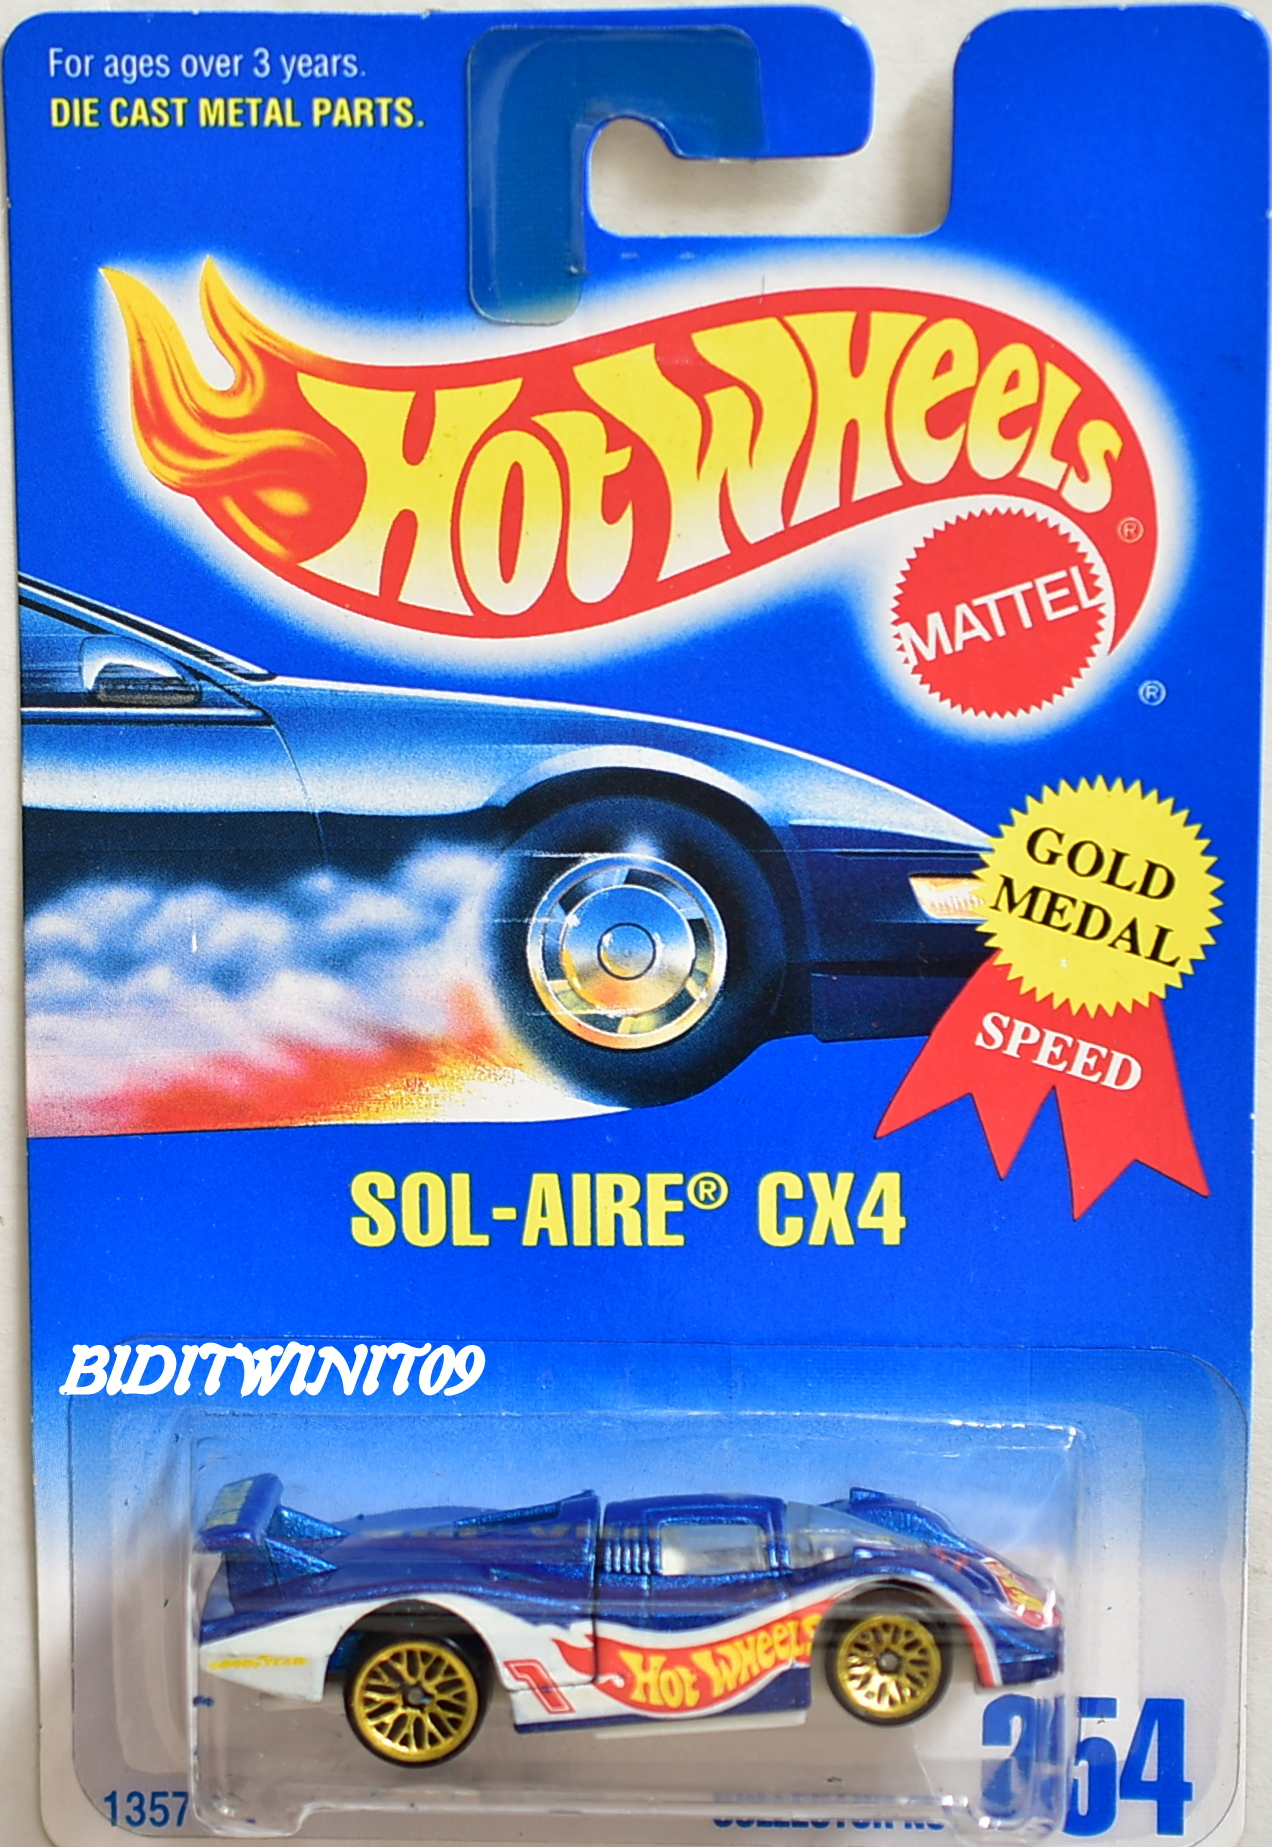 HOT WHEELS 1991 SOL-AIRE CX4 BLUE CARD WIRE TIRES #254